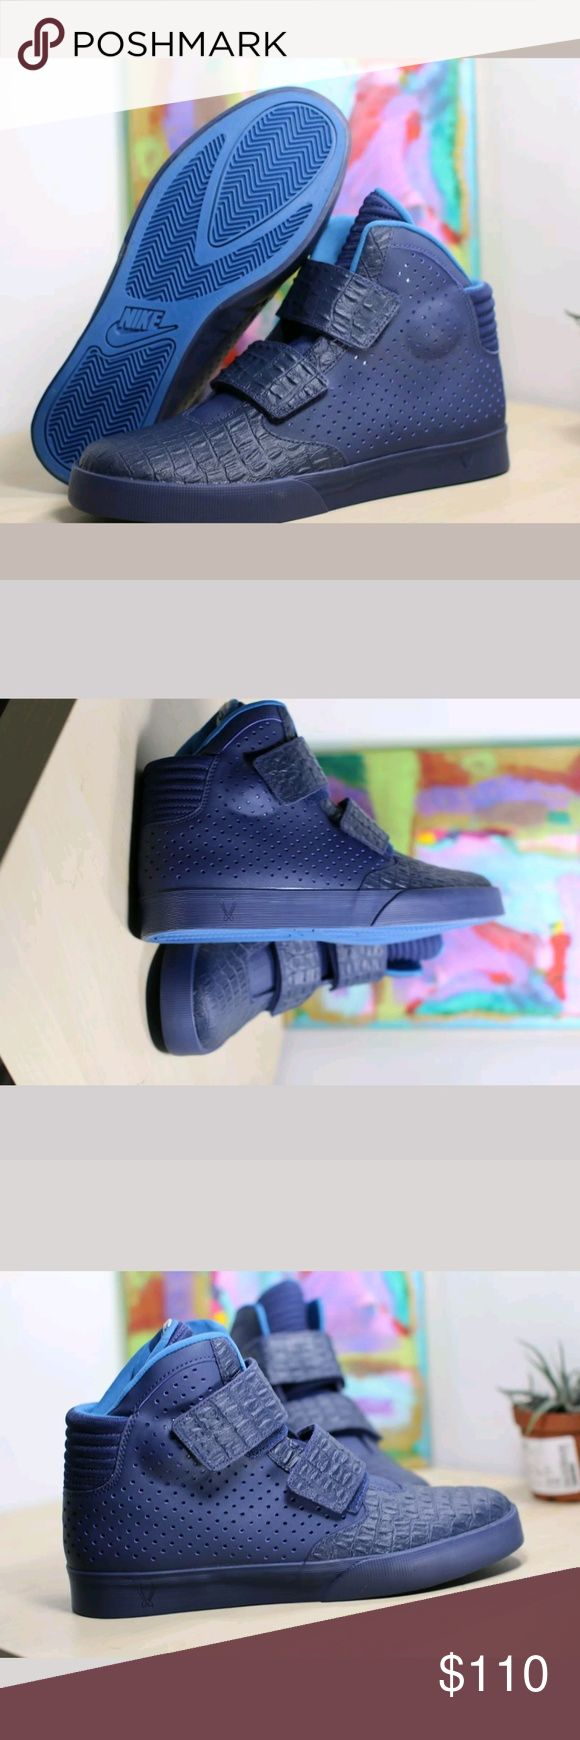 Nike flystepper 2k3 new size 11 1/2 Nike Flystepper 2K3 Premium Midnight Navy Brigade Blue Mens 677473 444 New size 11 1/2    New without box.  Inspired by the 2K3 hoops shoe, the Nike Flystepper 2K3 is a futuristic high top whose sleek, minimalistic upper features a dual strap system for supreme lockdown and style.  The autoclave midsole offers cushioning and support.Rubber outsole provides traction when you need it. Nike Shoes Sneakers